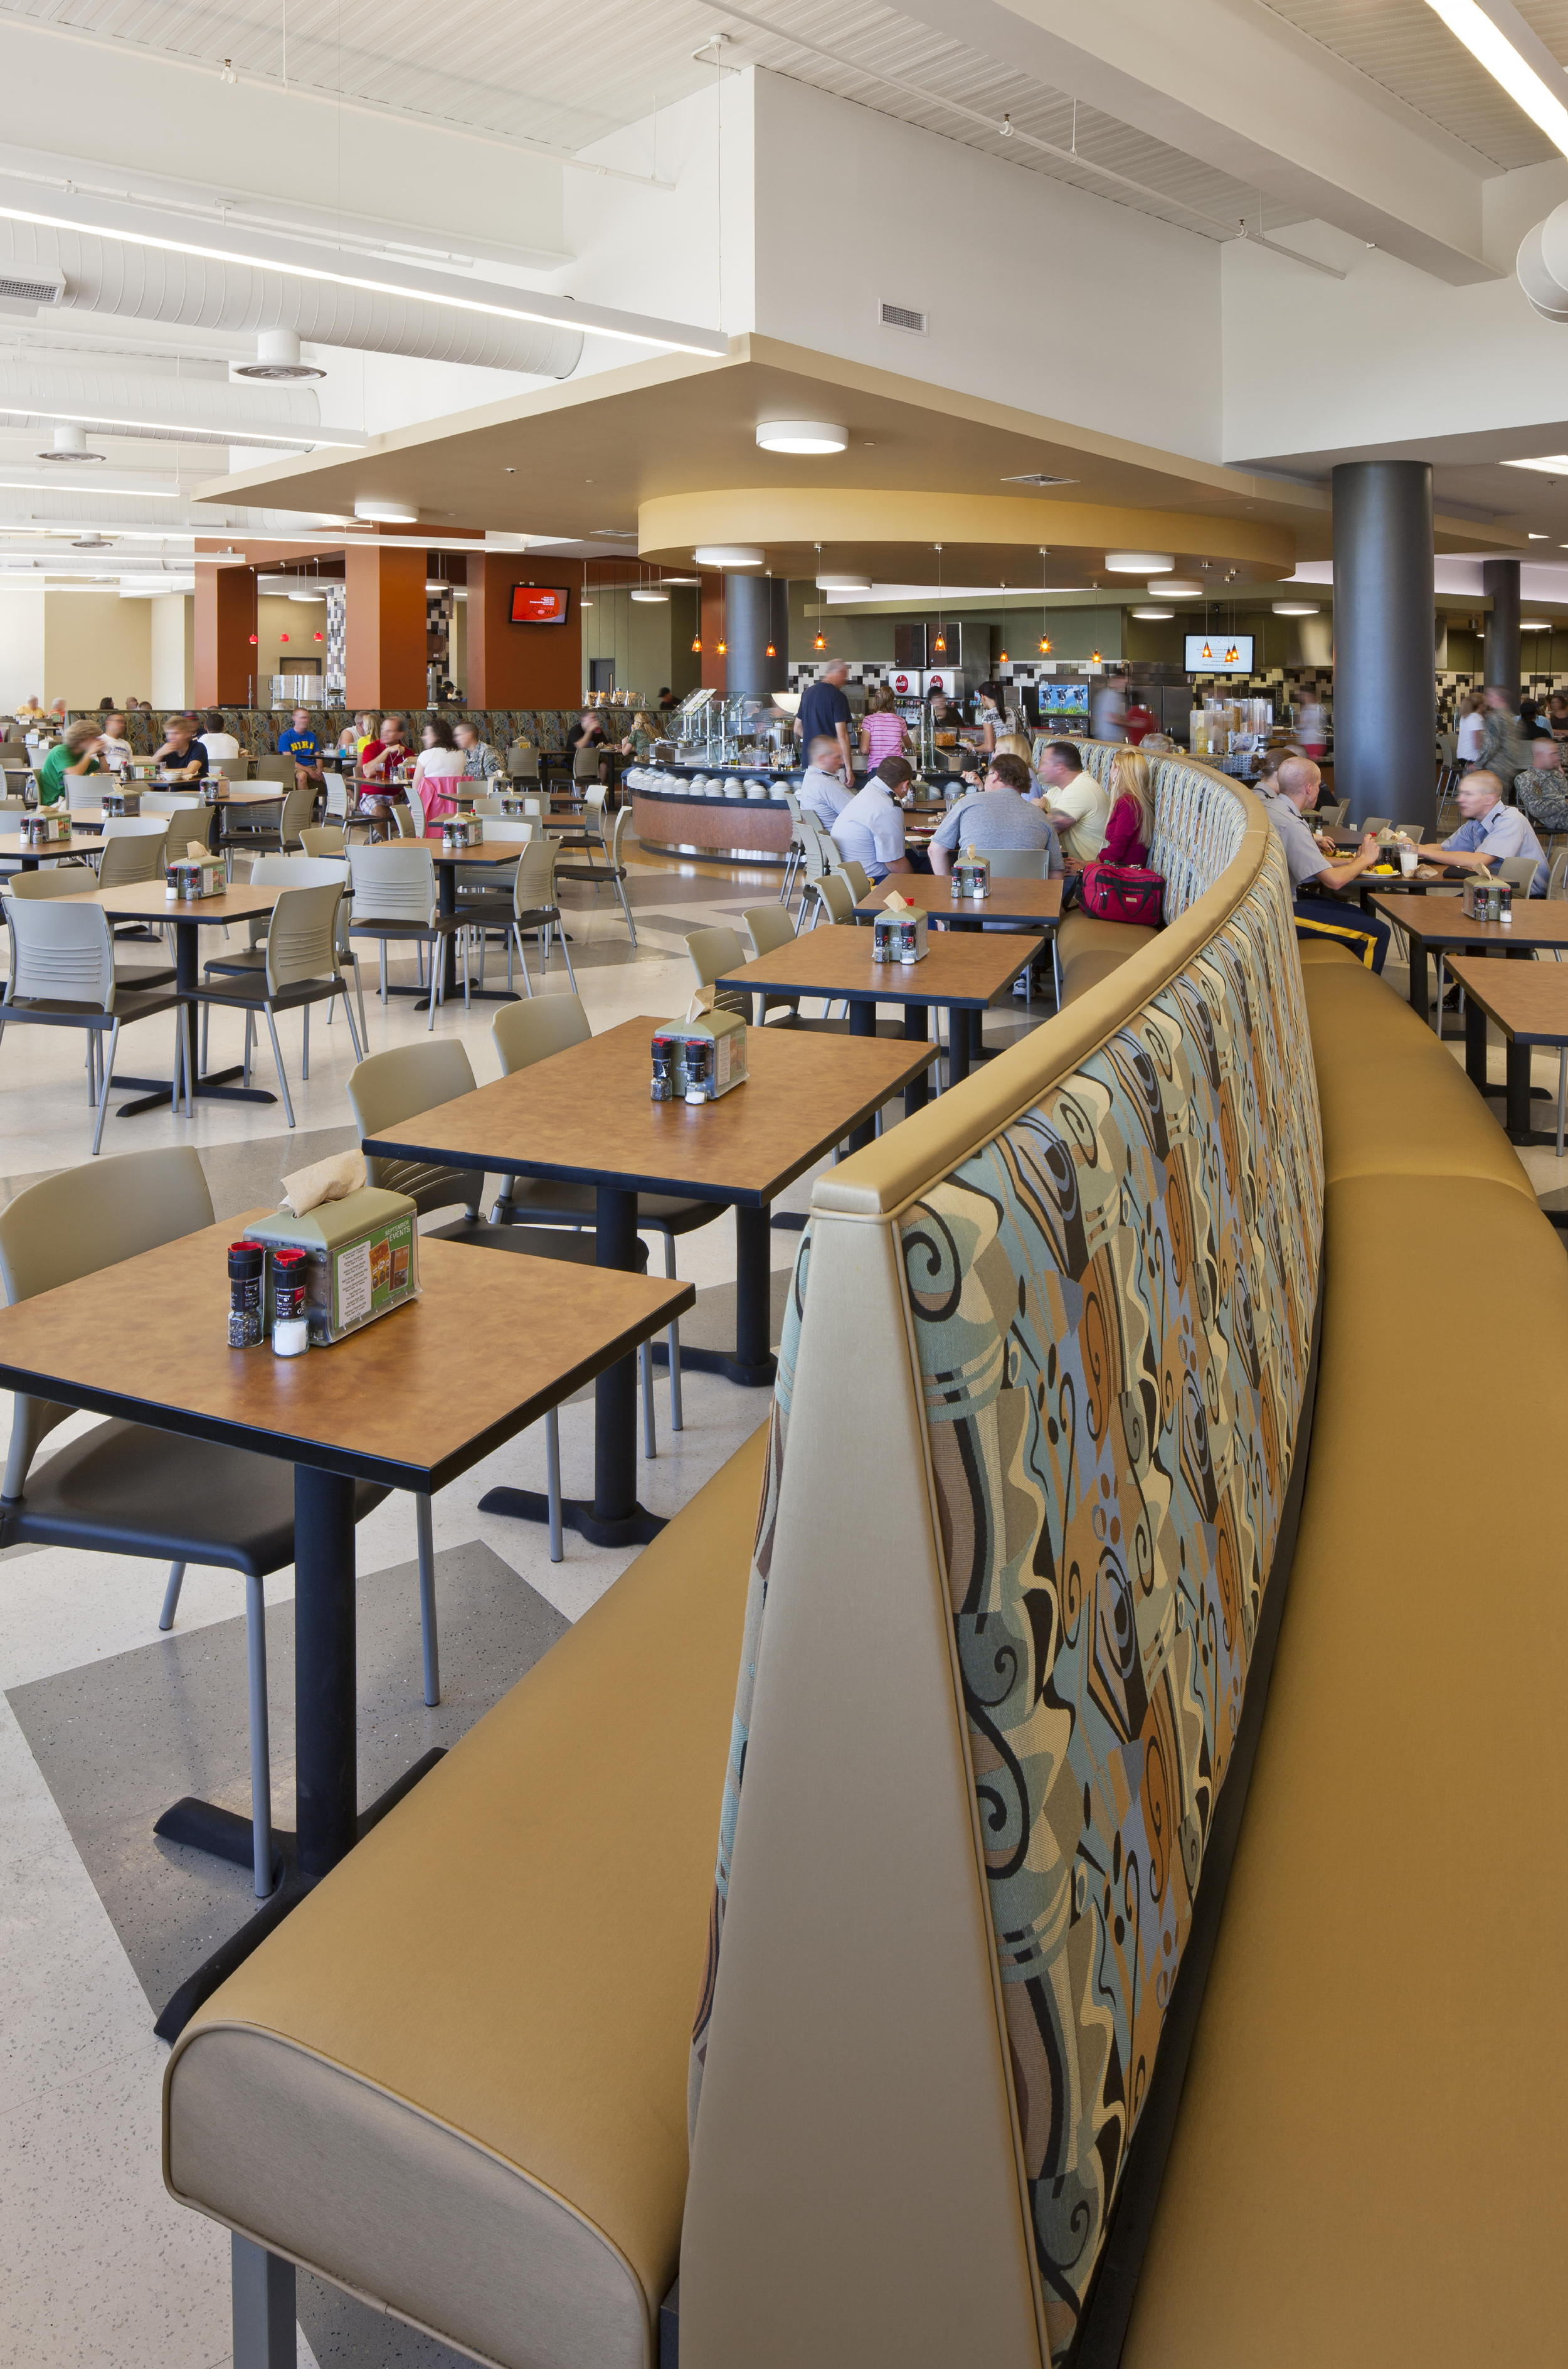 The new Dining Hall at North Georgia College & State University has seating for more than 900 students in a variety of spaces, including the large main dining space, an upper level, streetside diner-style eating zone and an area for club meetings. Photo copyright 2011 Jonathan Hillyer / Atlanta